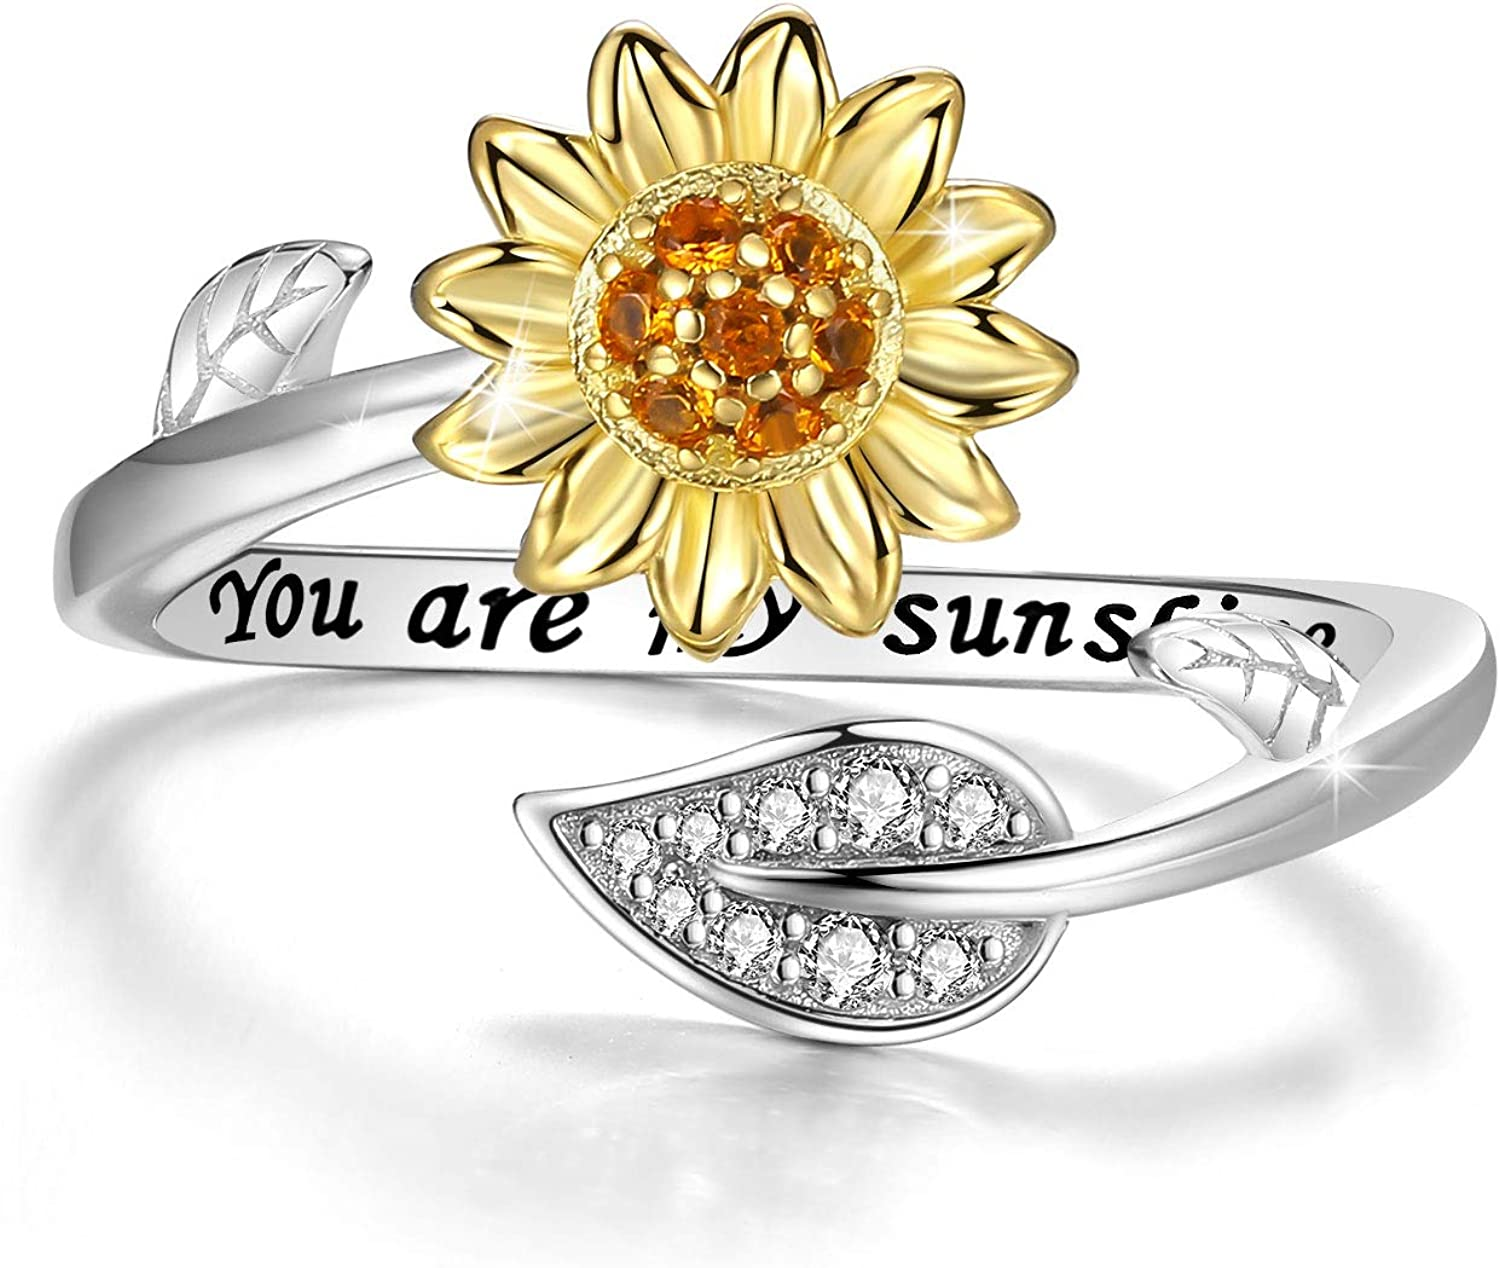 DIOFRG Engraved National products You are My Sunshine Ring 14K Gold Philadelphia Mall Plat Sunflower